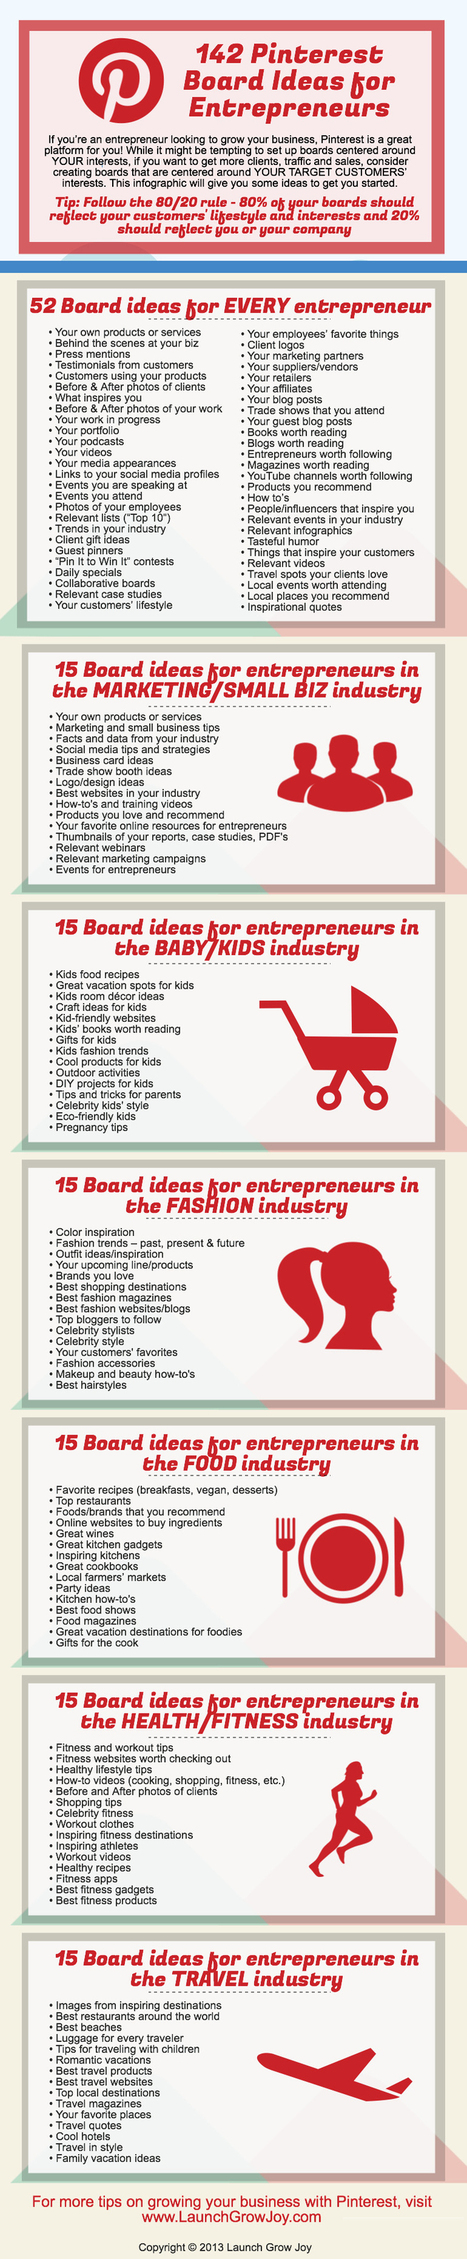 142 Pinterest Board Ideas for Entrepreneurs - Launch Grow Joy | SocialMediaSharing | Scoop.it